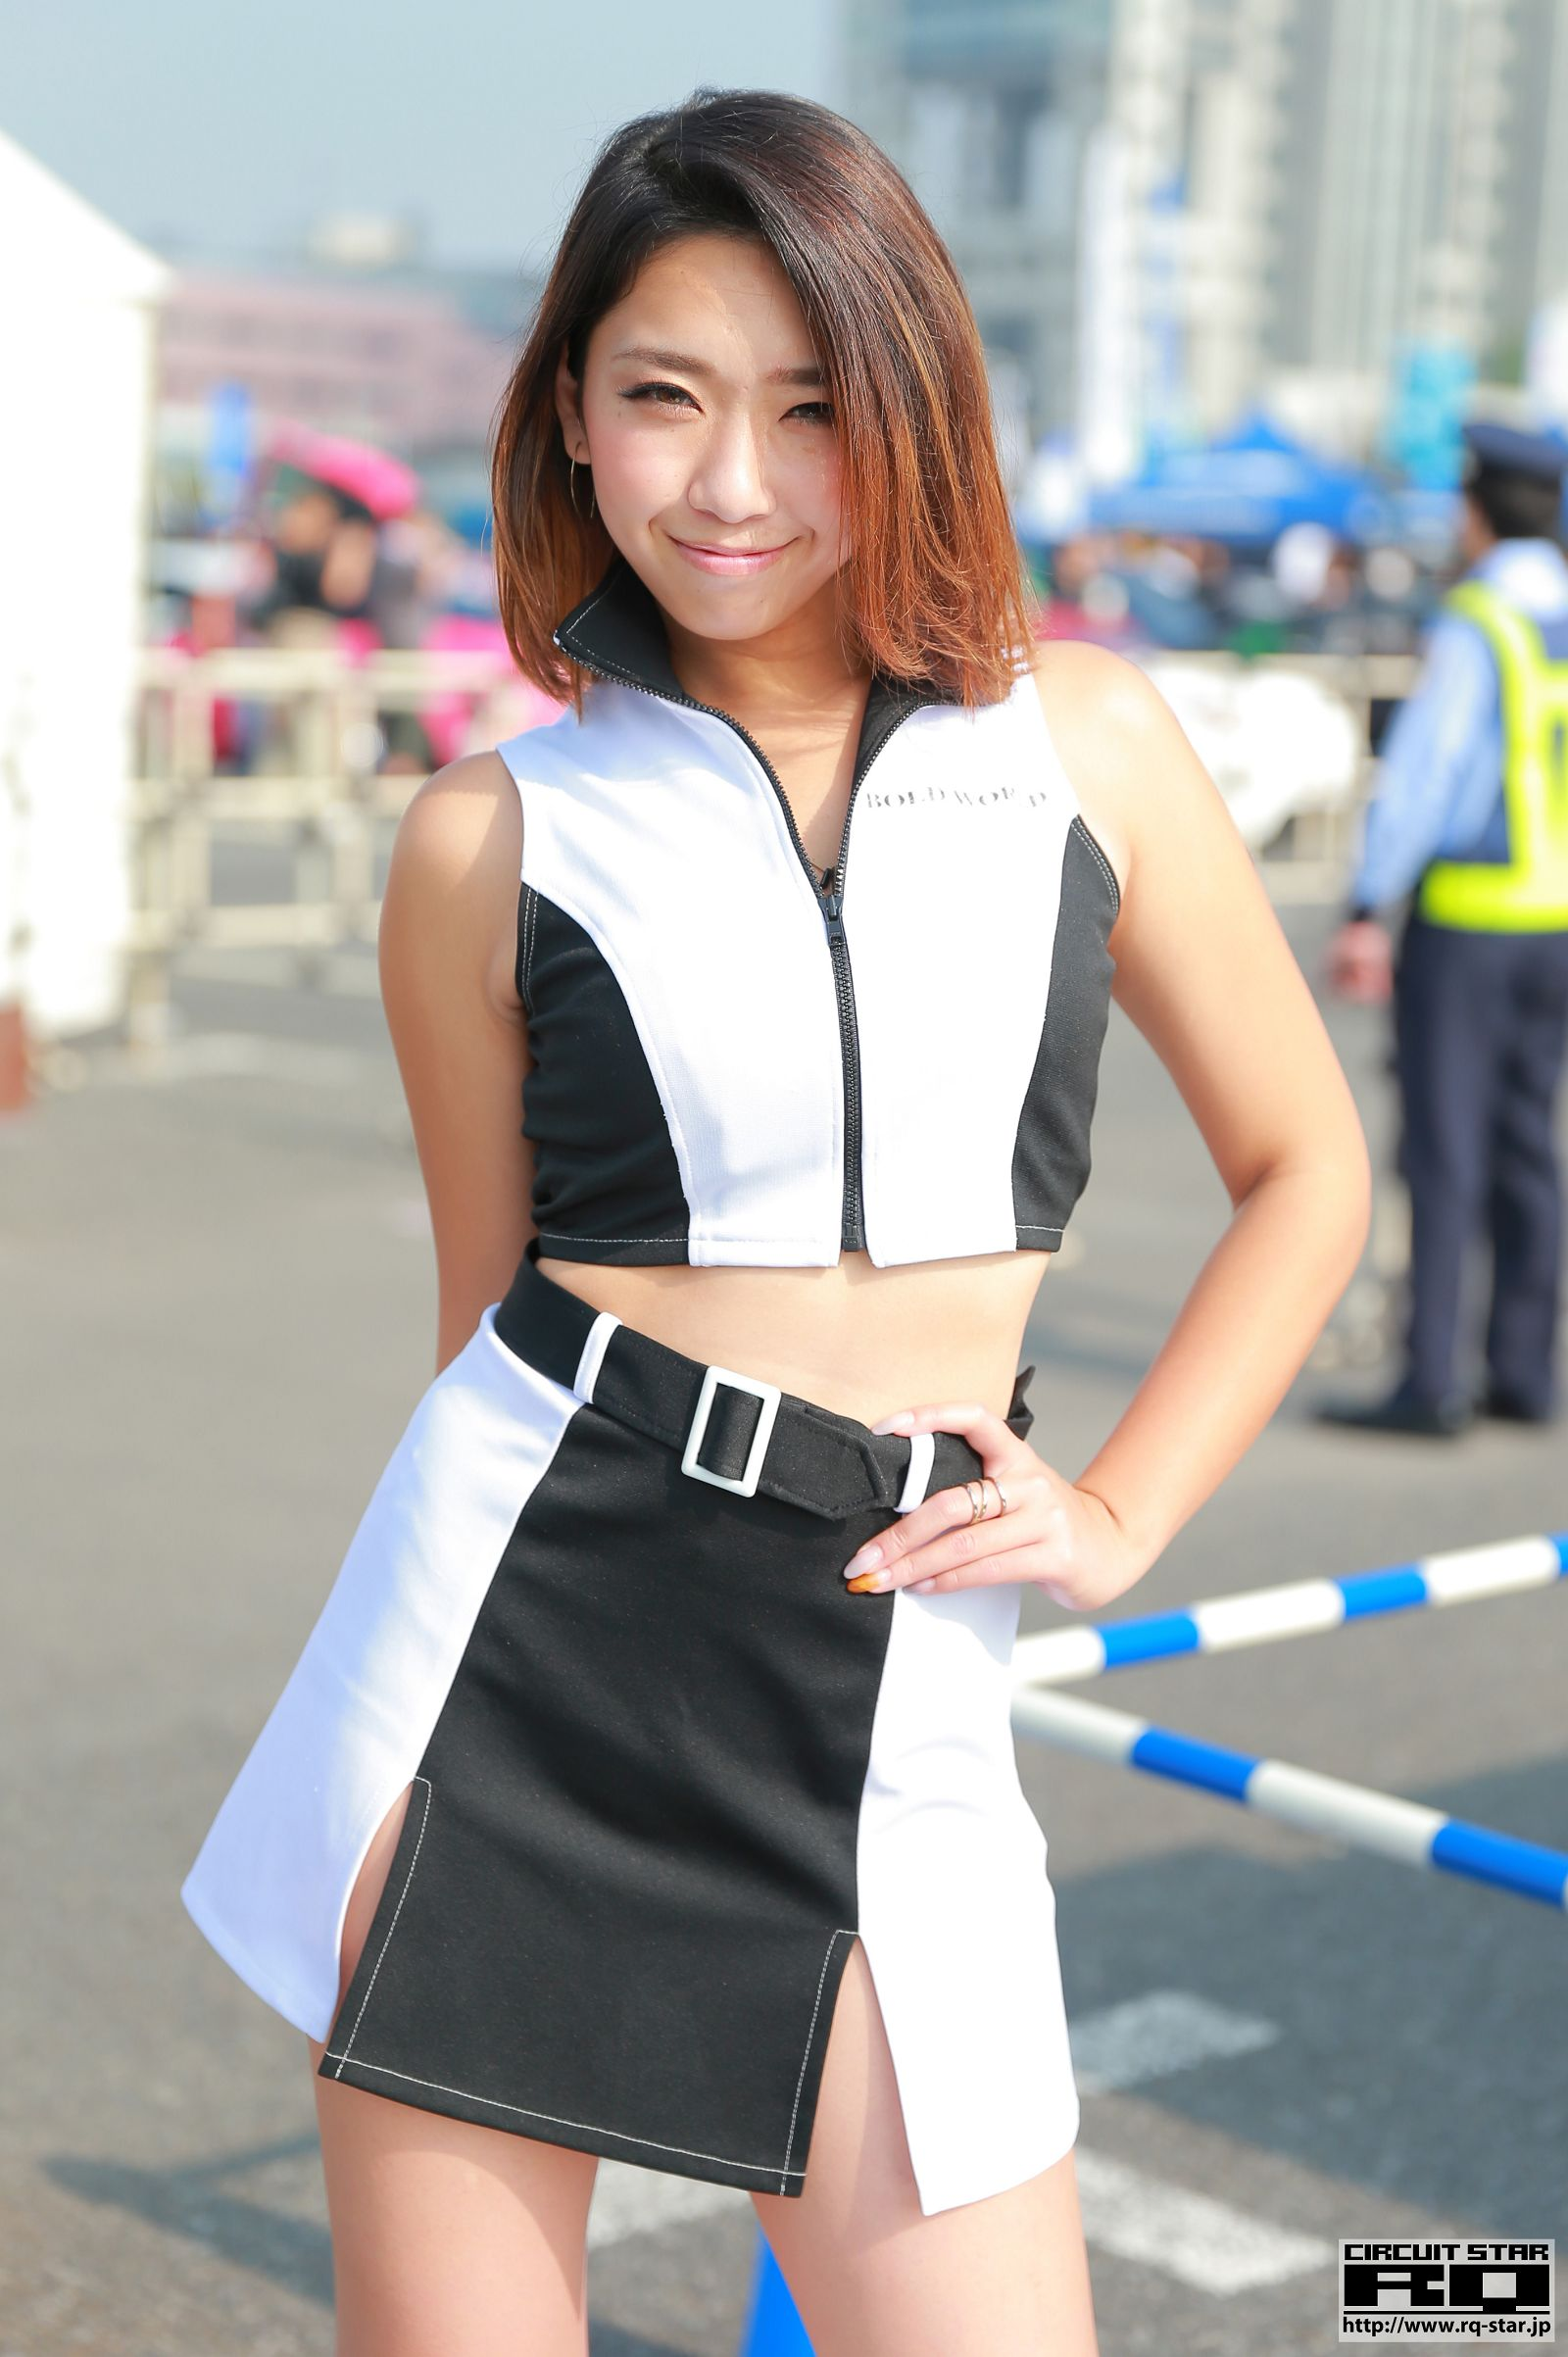 [RQ STAR美女] 2017.11.15 D1 GRAND PRIX in TOKOY 2015 D1GP お台場Vol.6[77P] RQ STAR 第3张